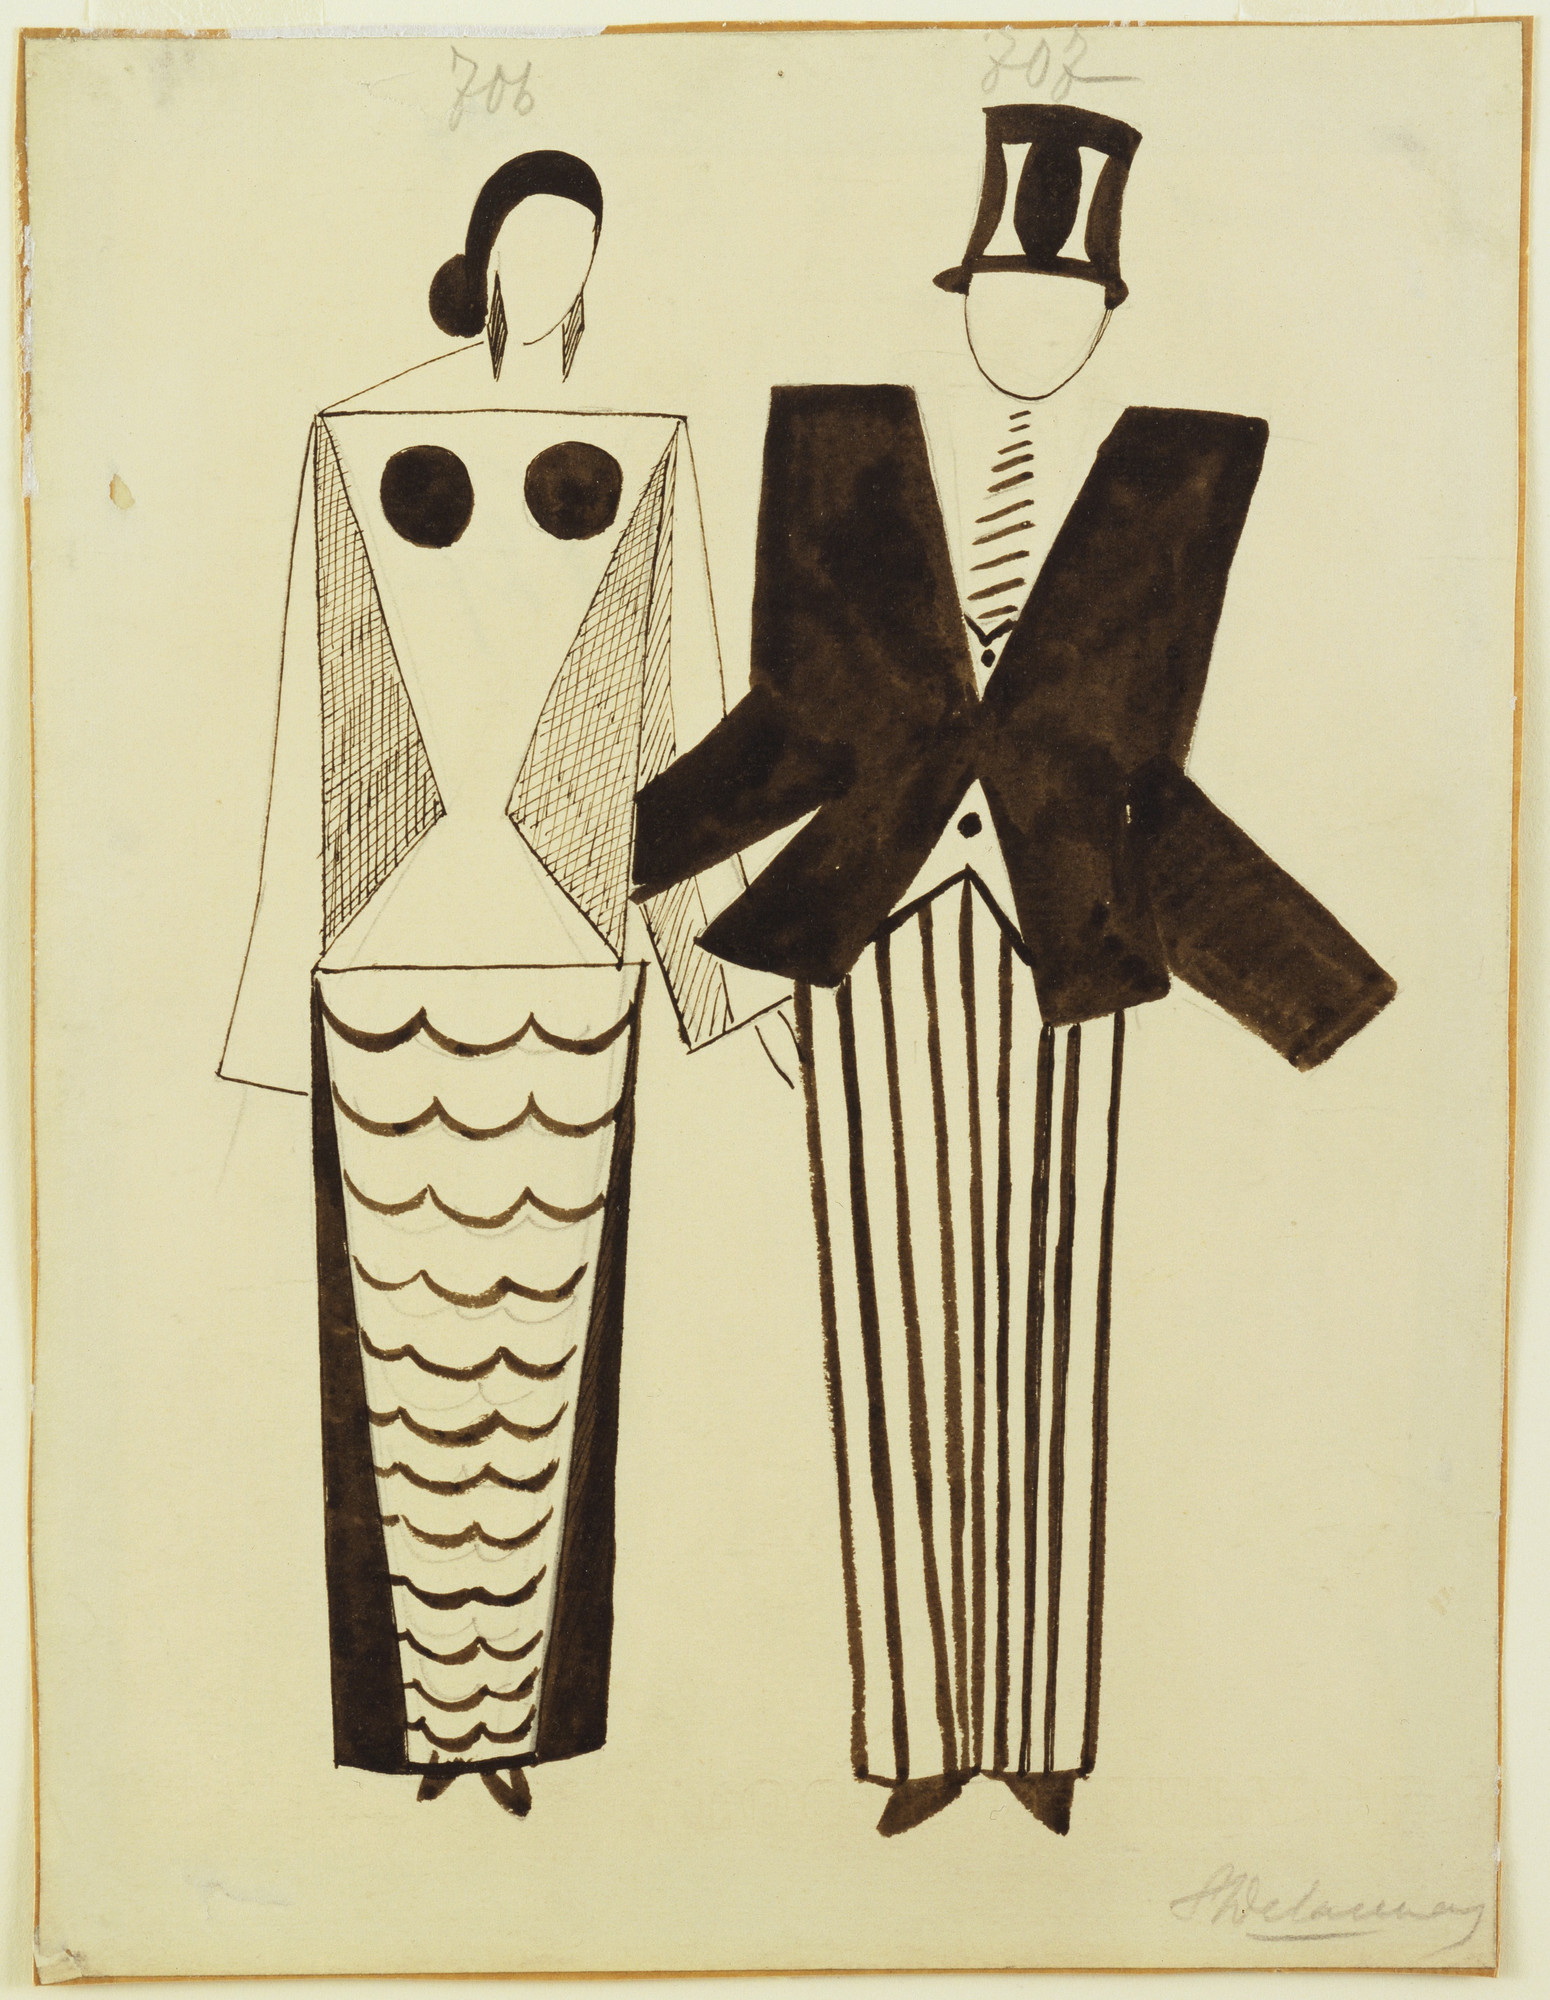 Sonia Delaunay-Terk. Miss Mouth and Mr. Eye. Costume designs for the play Le Coeur à Gaz. (1923)